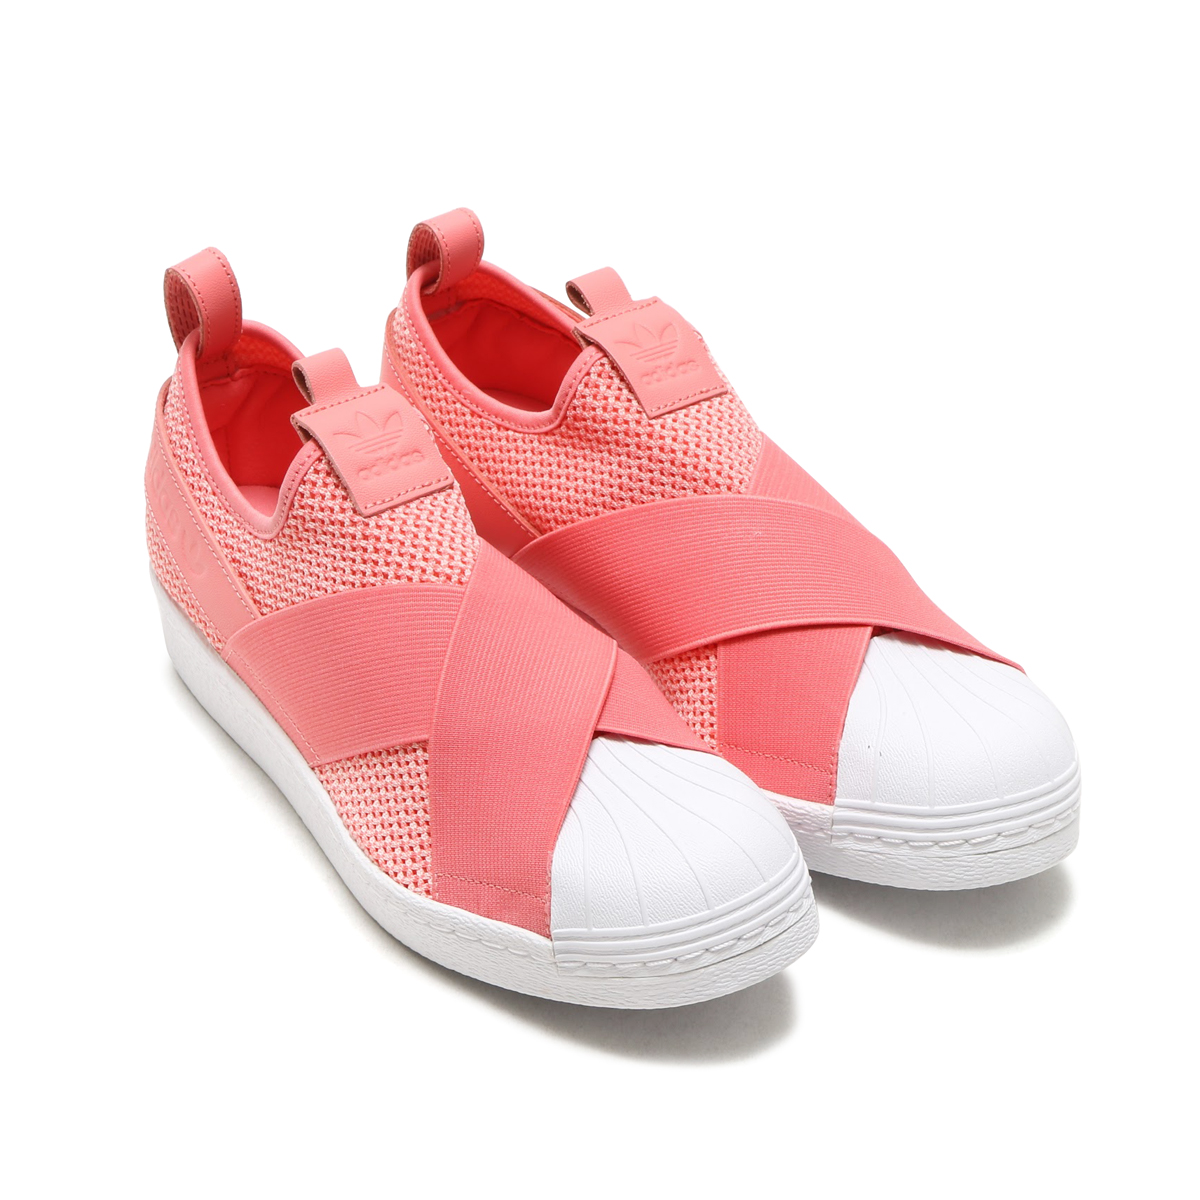 a2ad365ea9a69a adidas Originals SUPERSTAR SlipOn W (Adidas originals superstar slip-on)  Tactile Rose Tactile Rose Running White 17FW-I